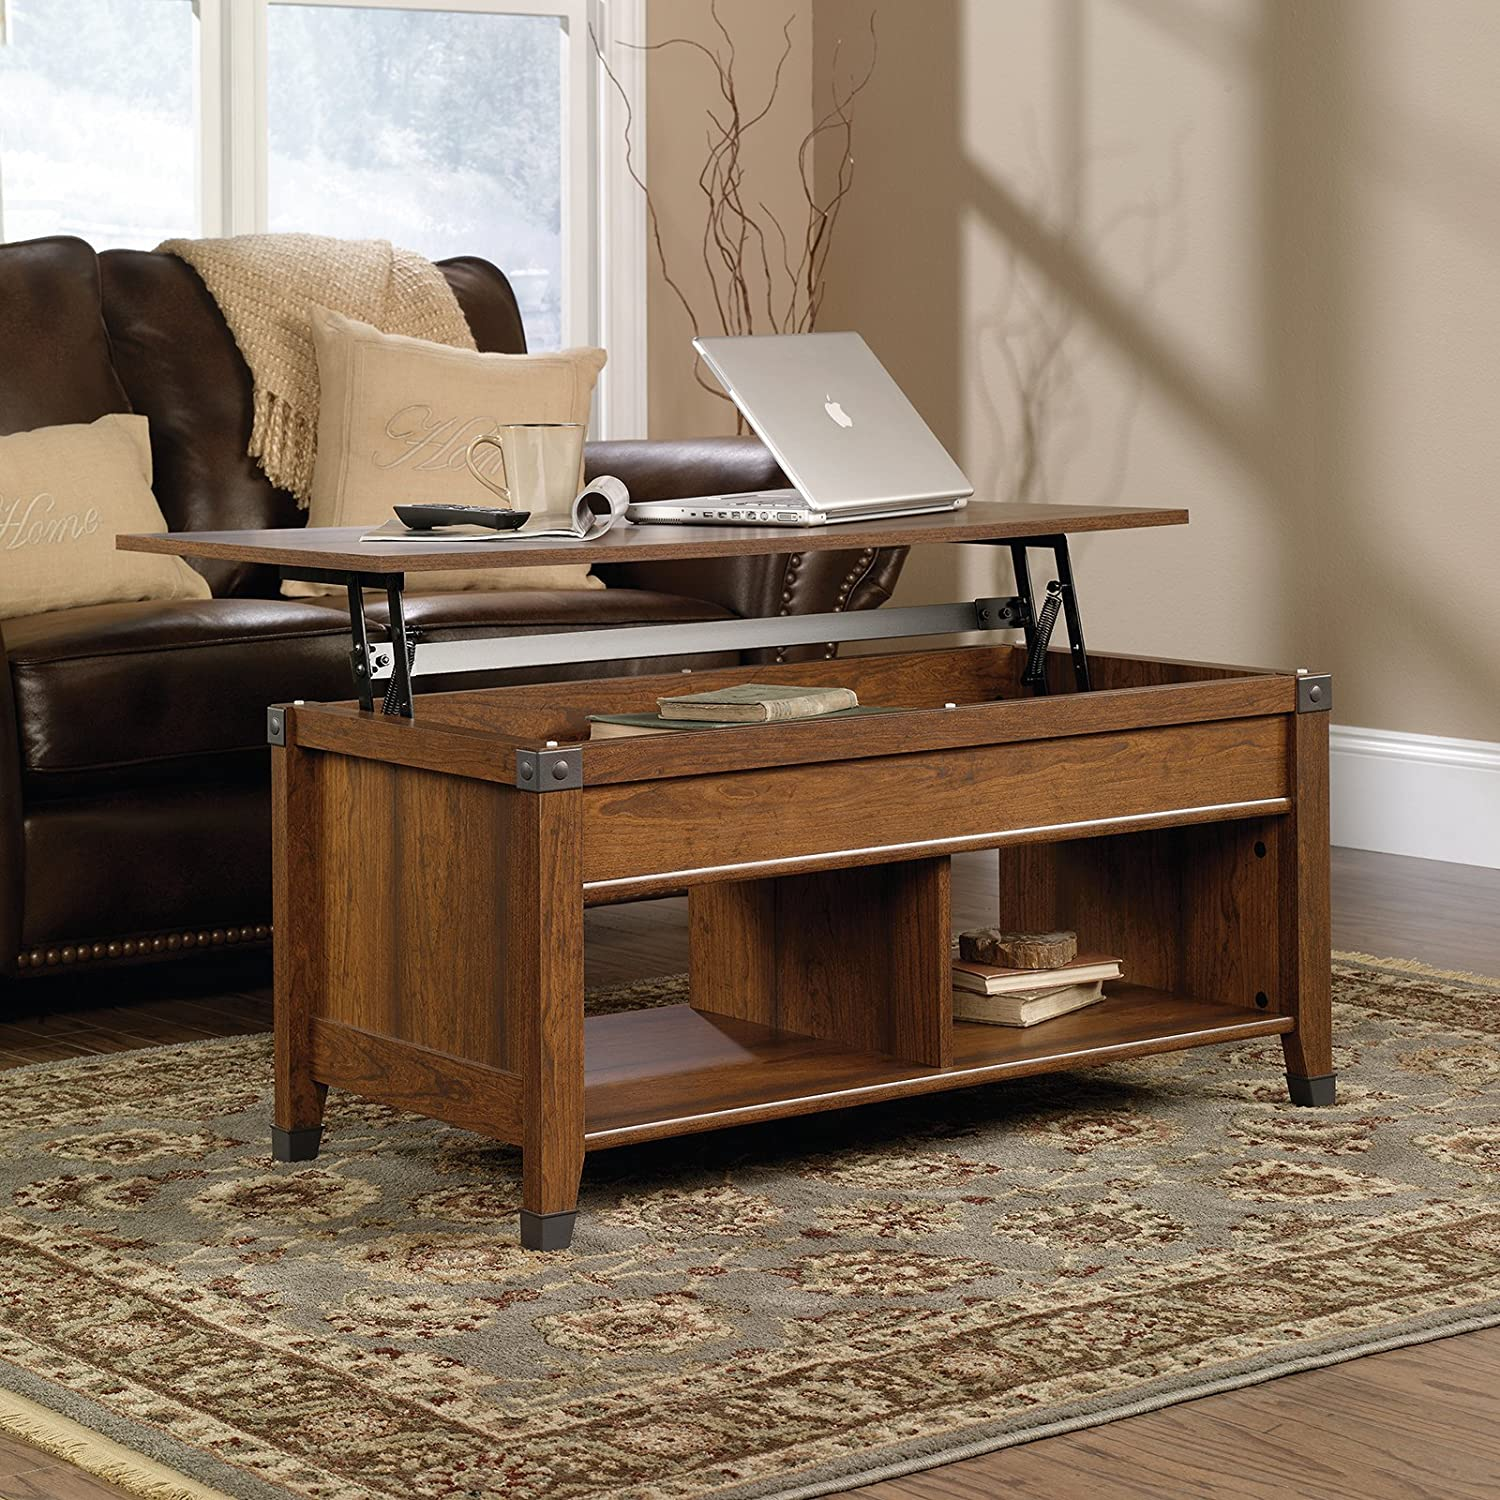 Sauder Carson Forge Lift Top Coffee Table Color:Washington Cherry